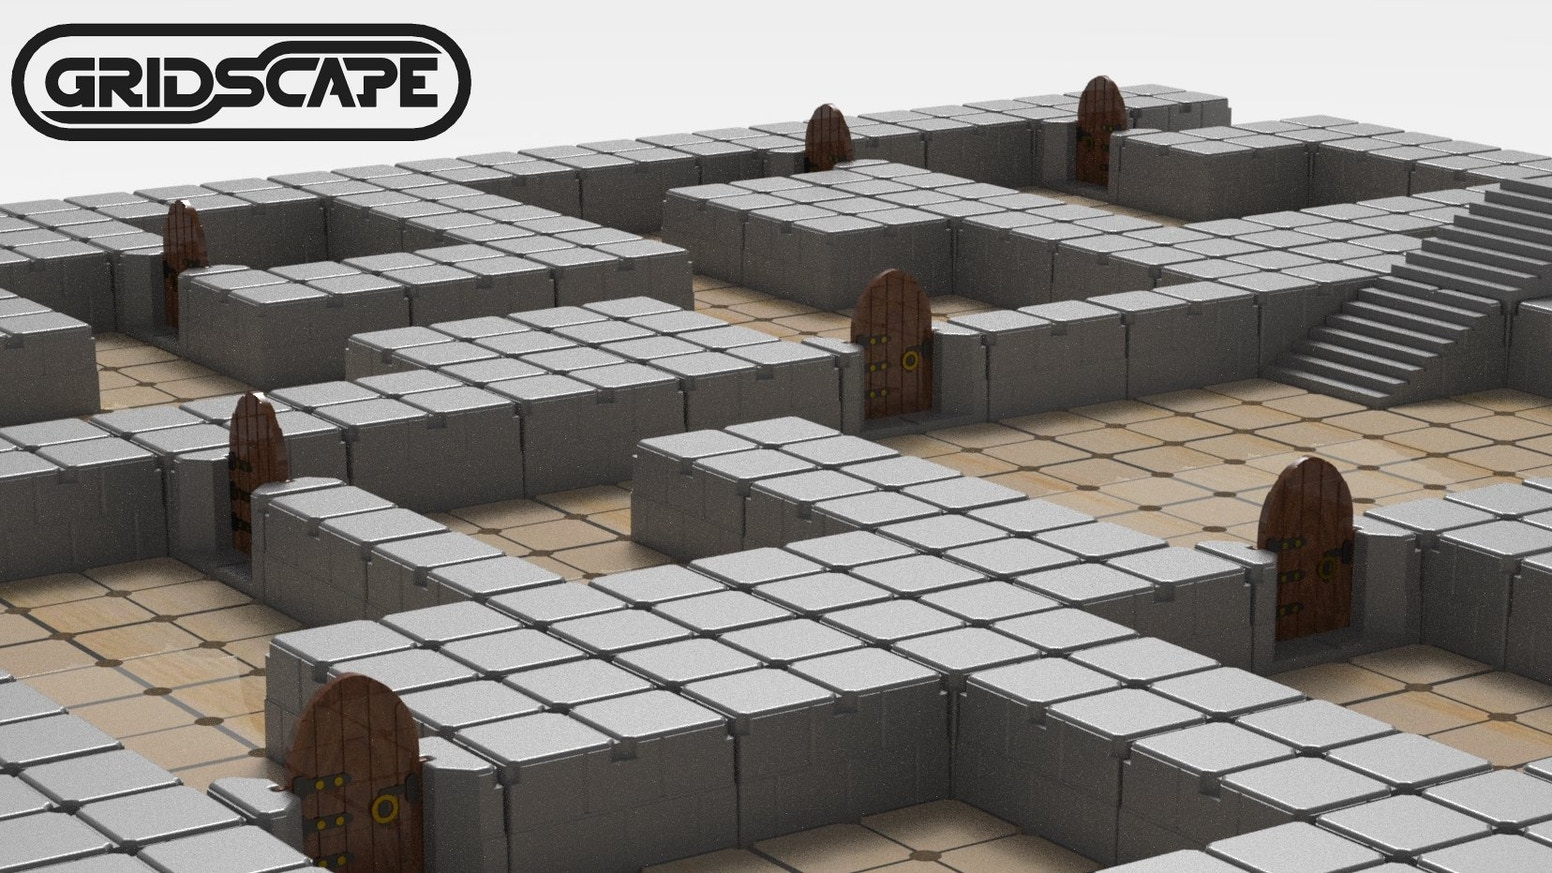 Revolutionize your tabletop gaming experience with the groundbreaking new dungeon-building system that snaps to a pegboard grid!